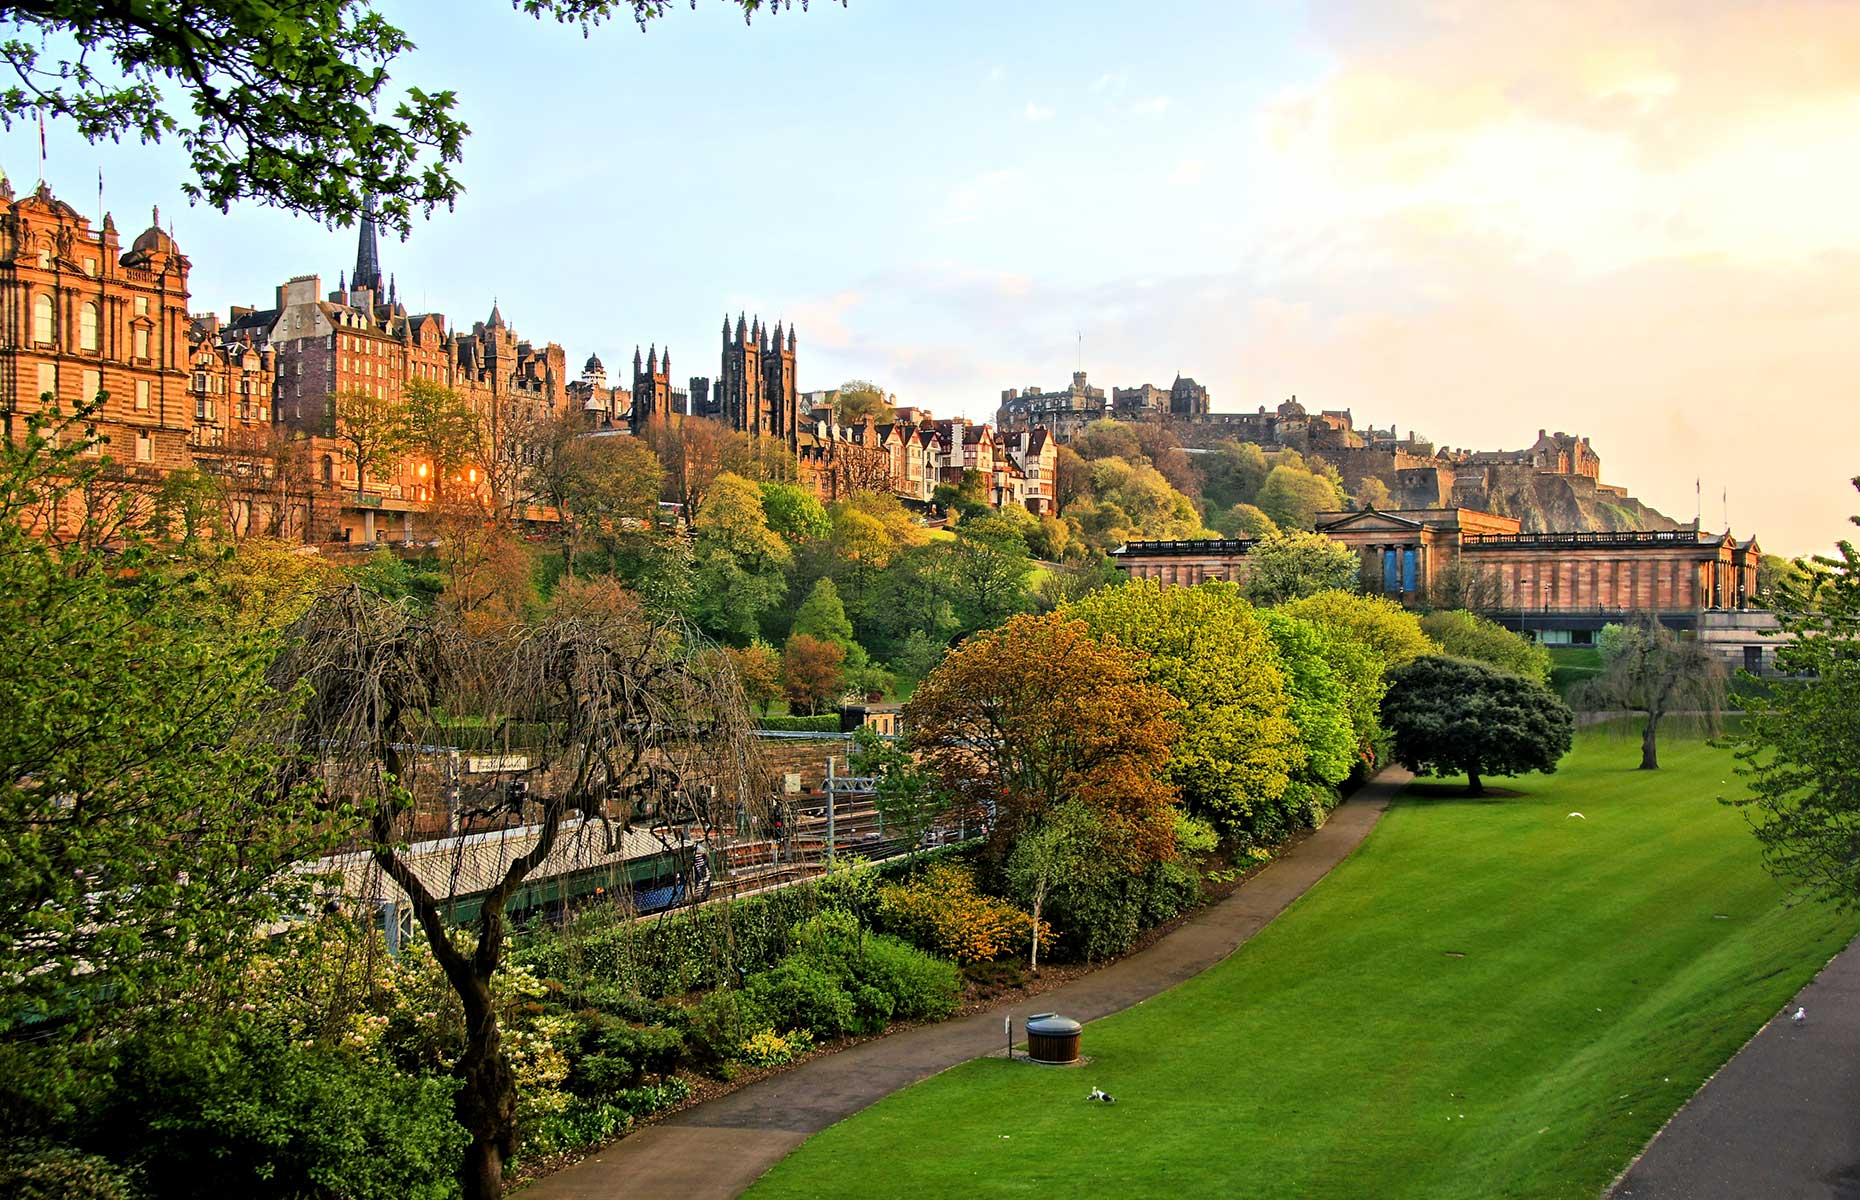 View of Edinburgh at sunset from Princes Street (Image: JeniFoto/Shutterstock)